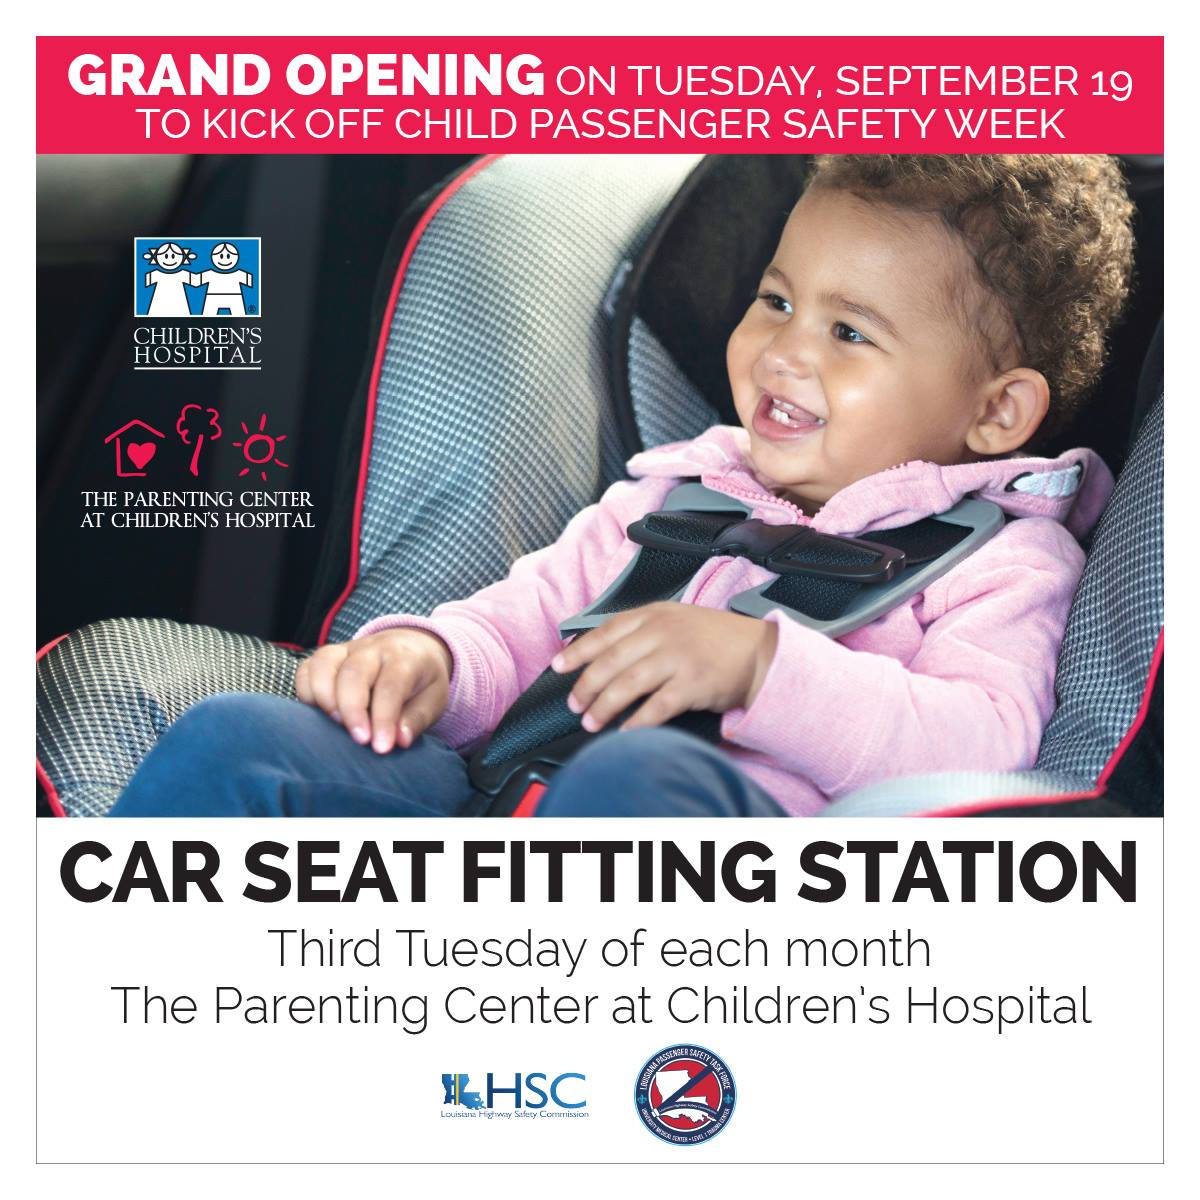 Childrens Hospital On Twitter Car Seat Fitting Station To Launch